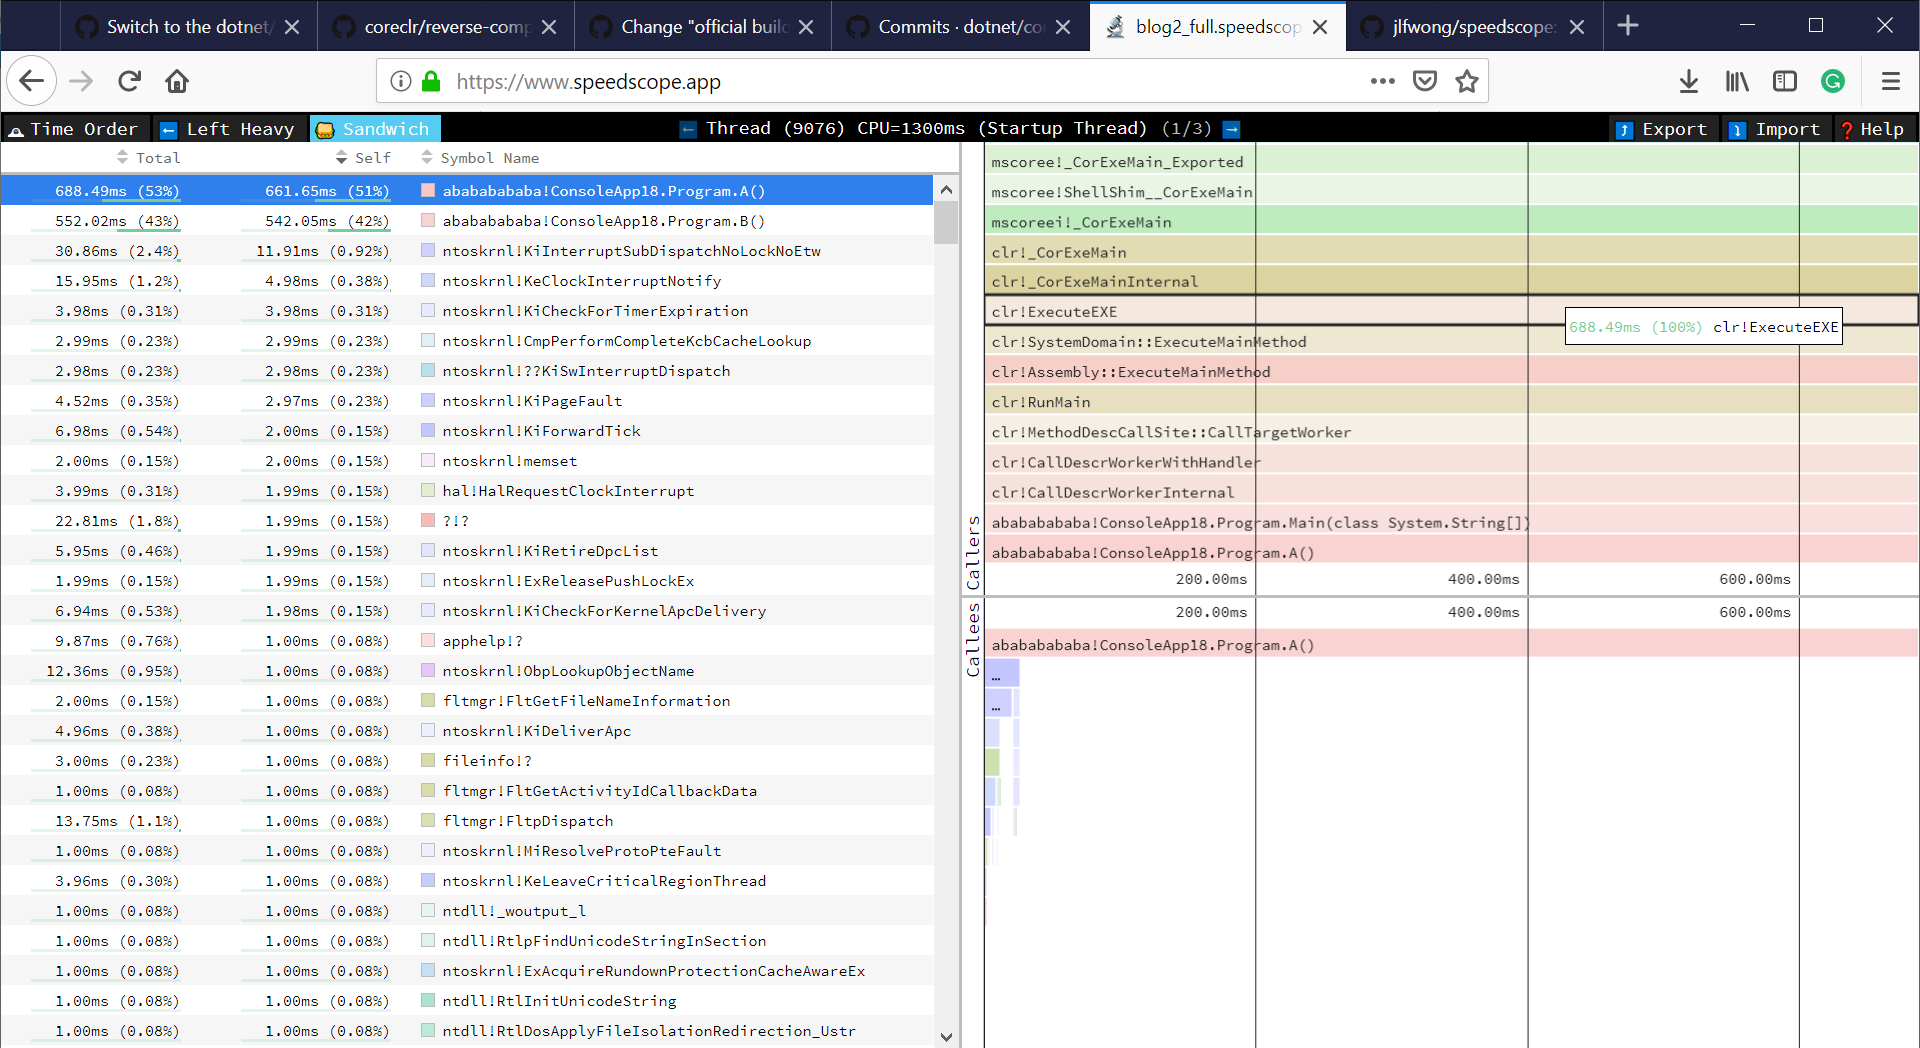 Profiling  NET Code with PerfView and visualizing it with